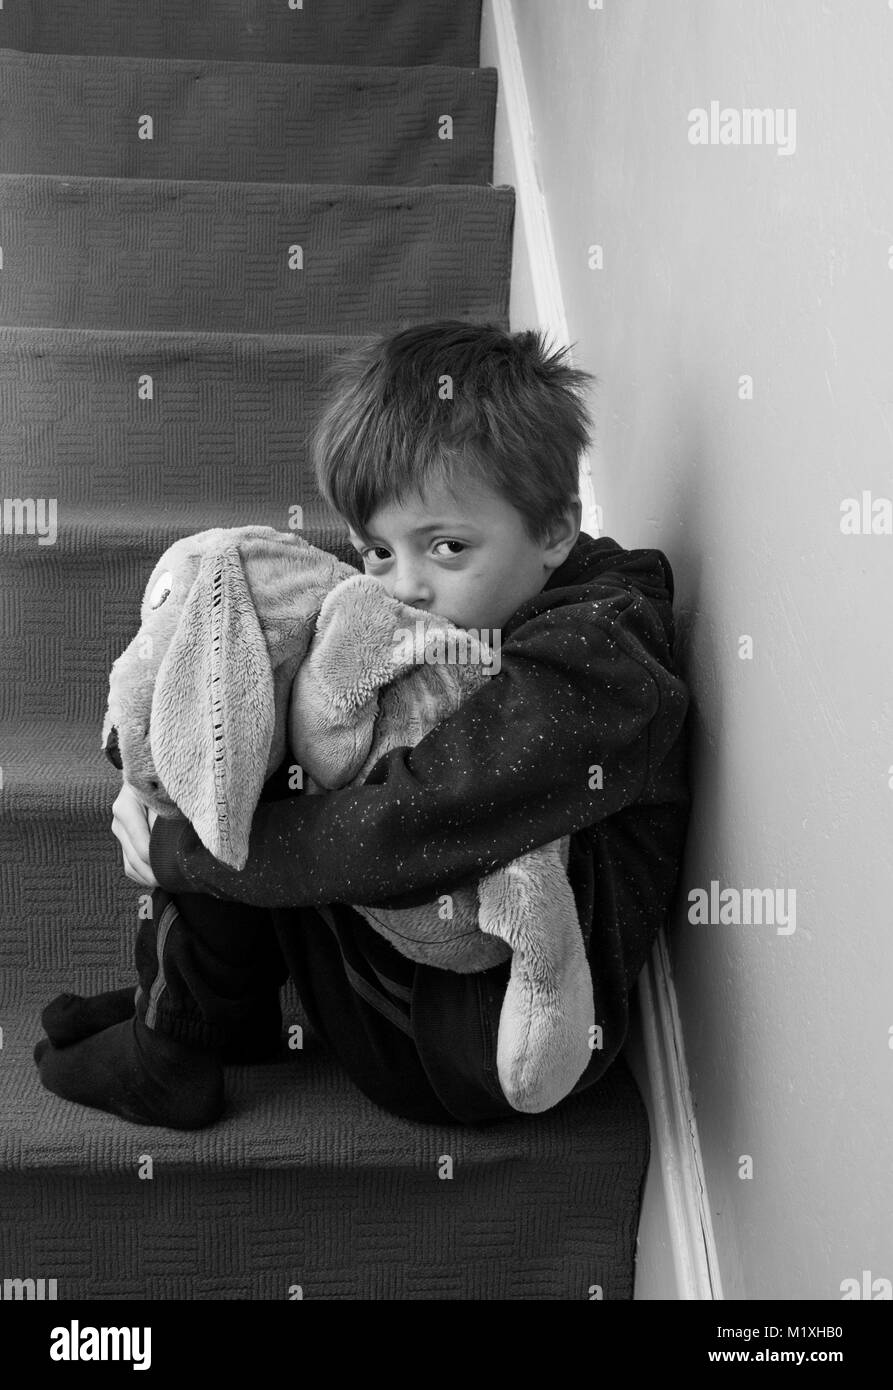 An impression of a lonely child in black and white stock image